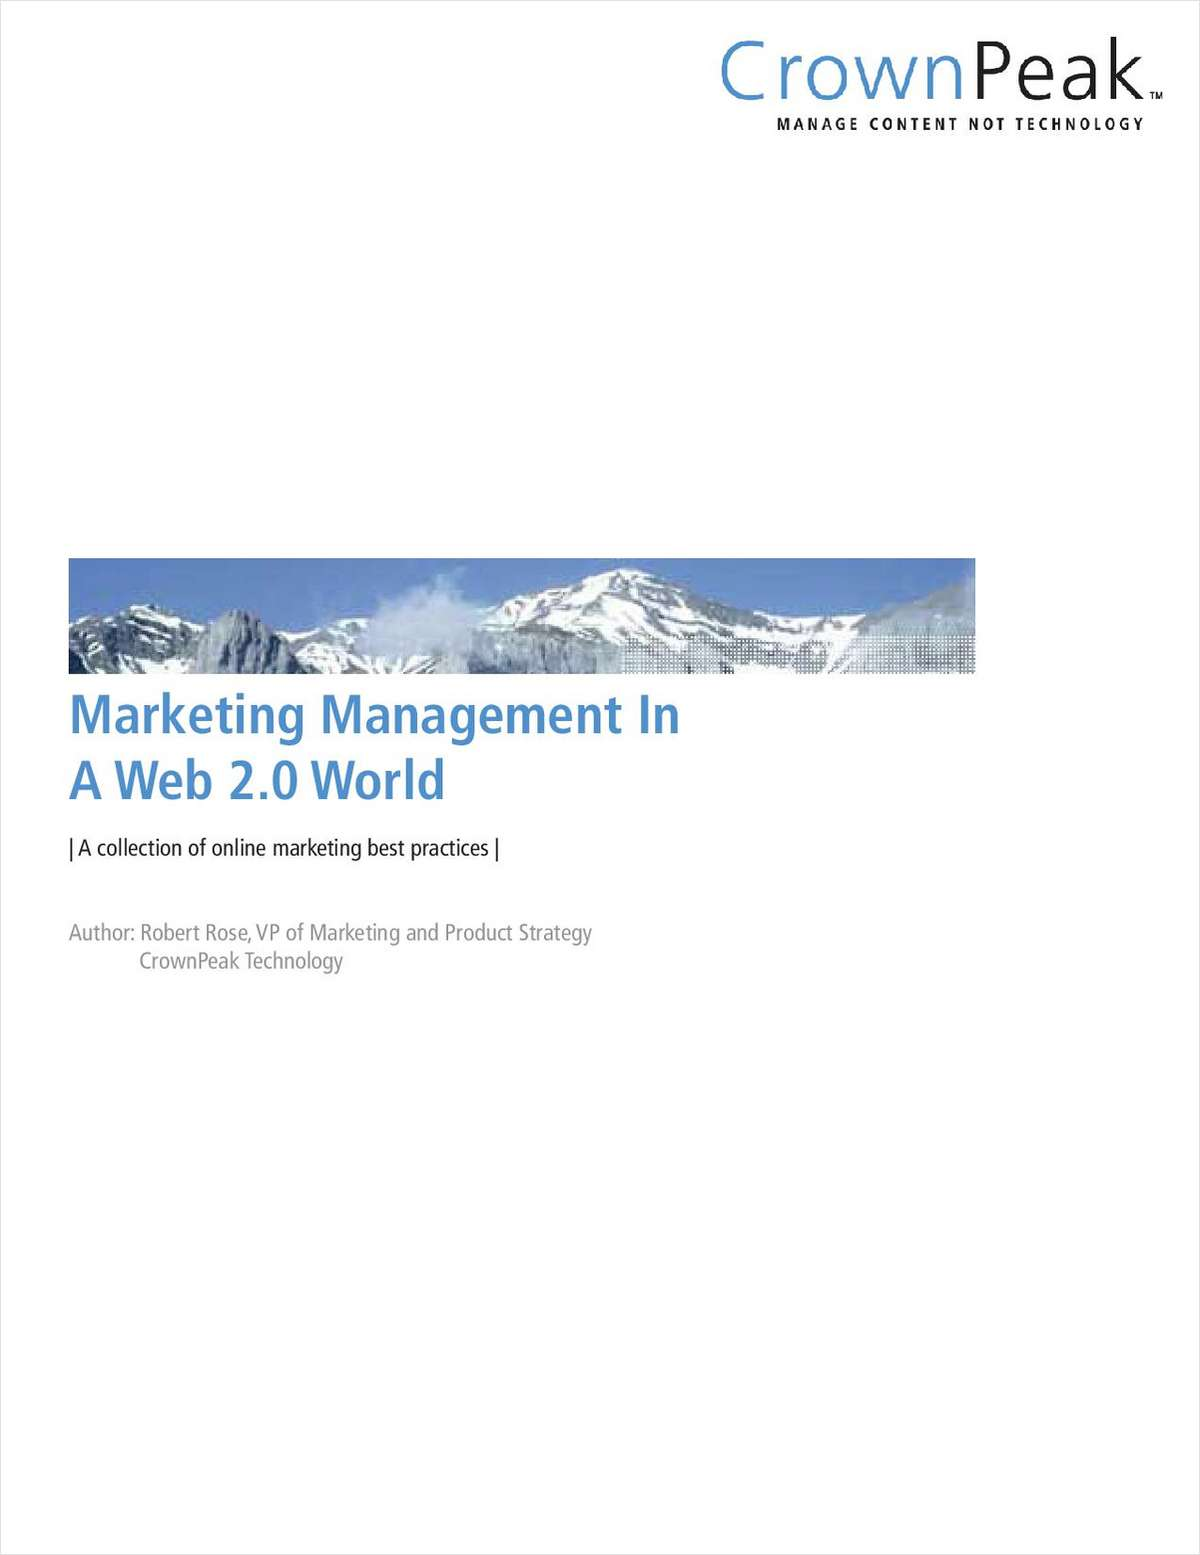 Marketing Management In A Web 2.0 World